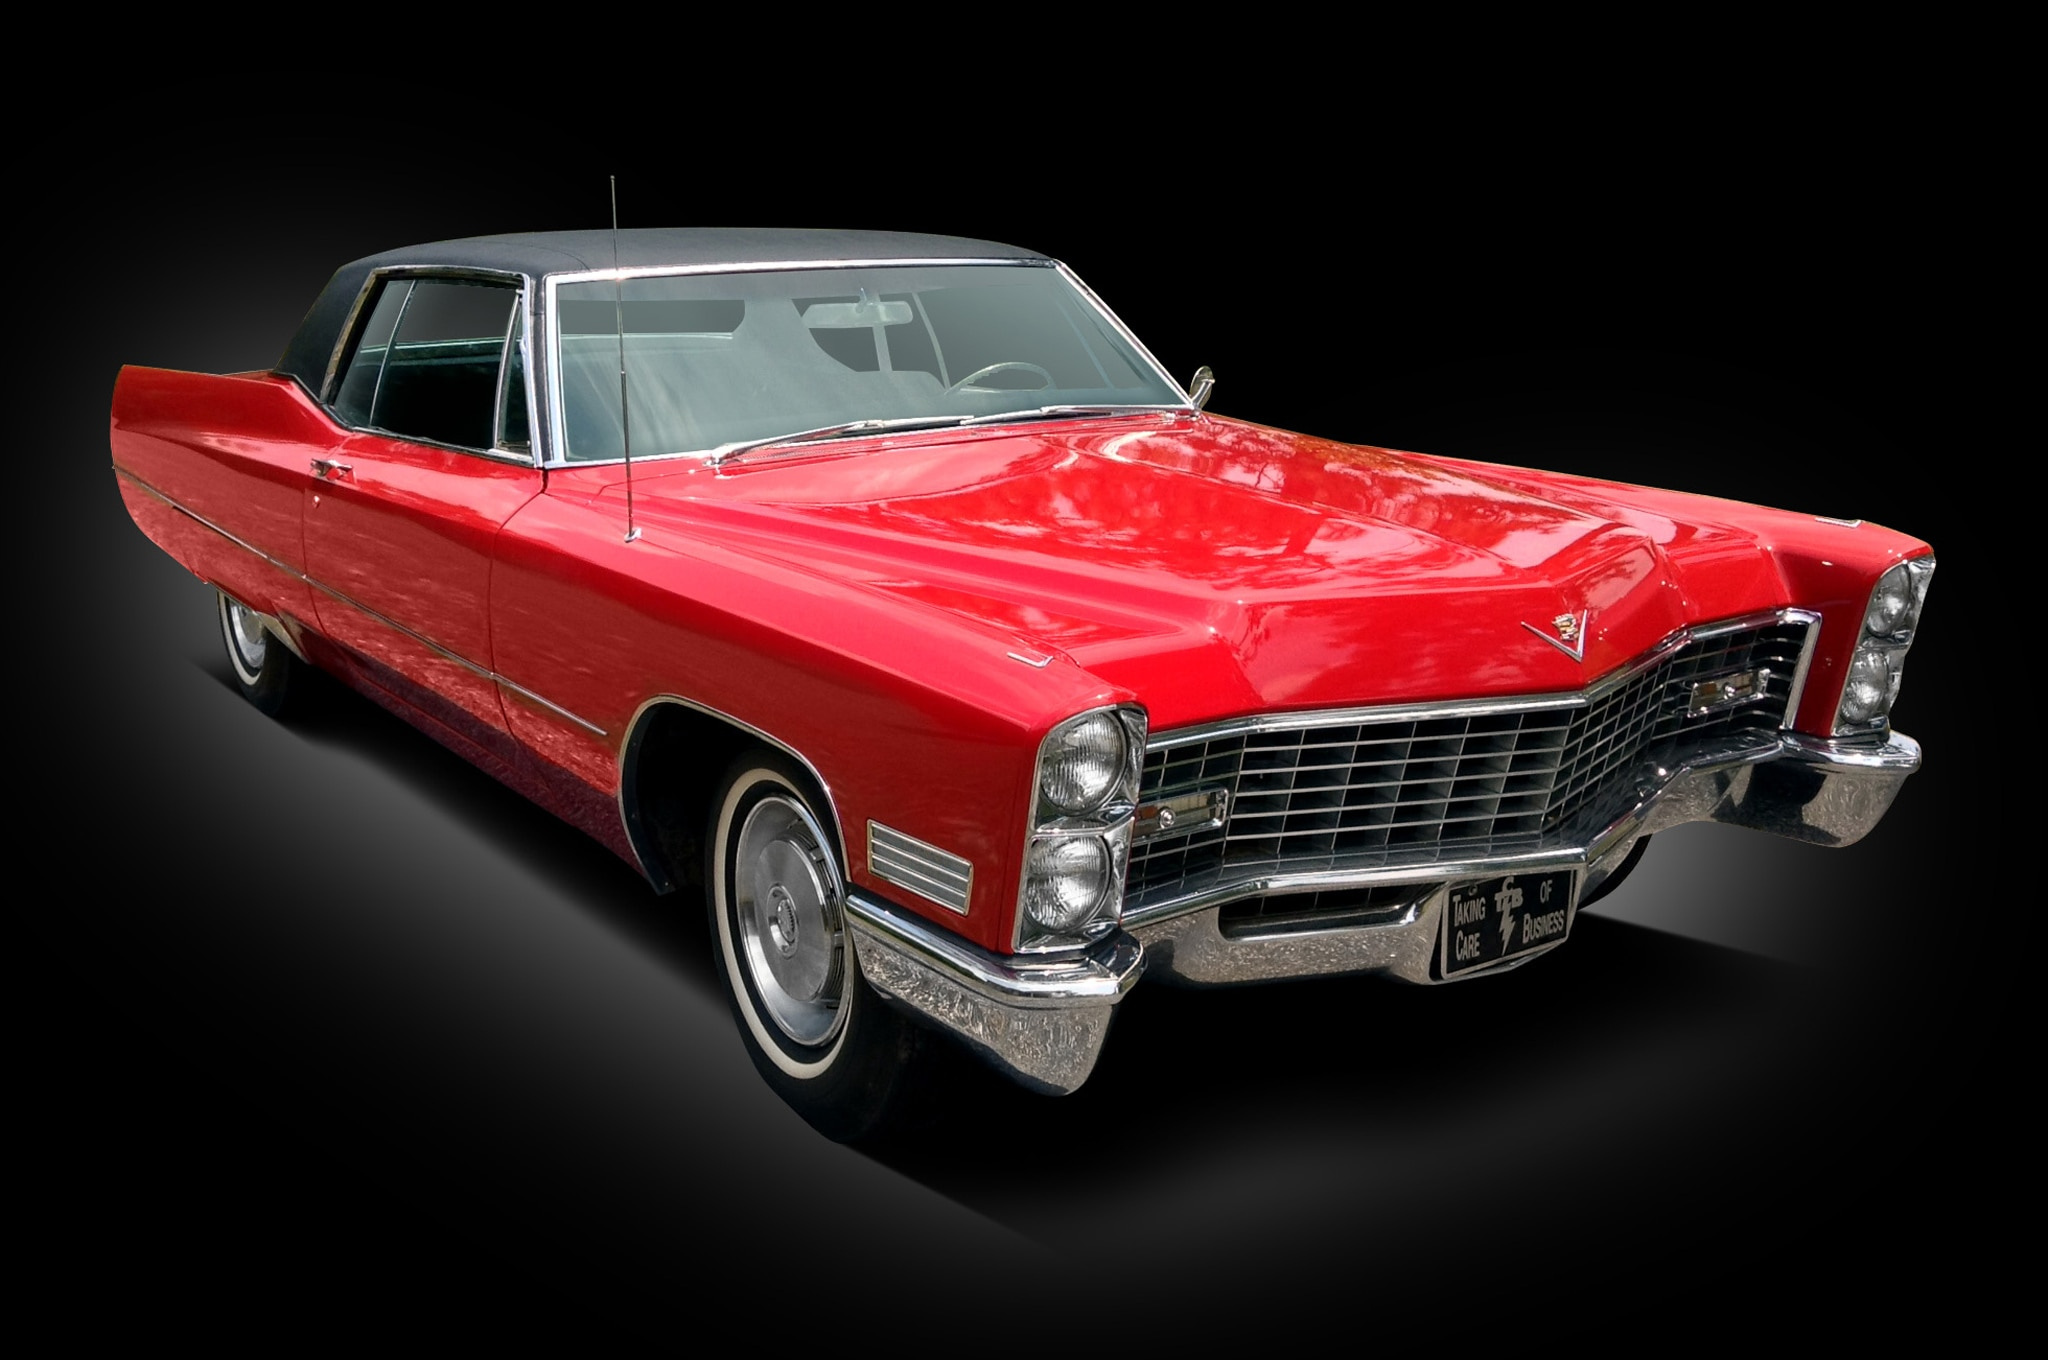 1965 Cadillac Deville Fuse Box Location 39 Wiring Diagram Images 1960 1967 Coupe Owned By Elvis Diagrams 1992